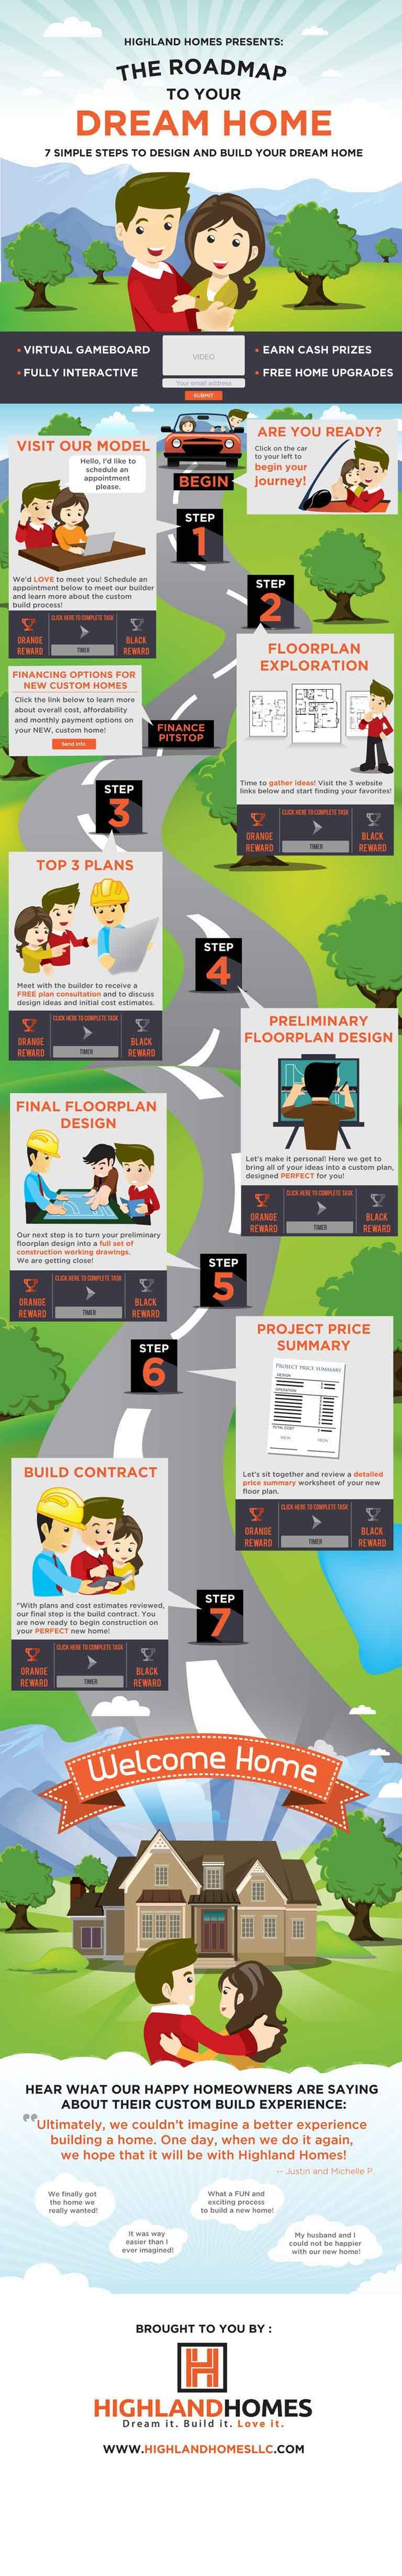 fritzR - Stunning 7 step info graphic for high end custom home builder